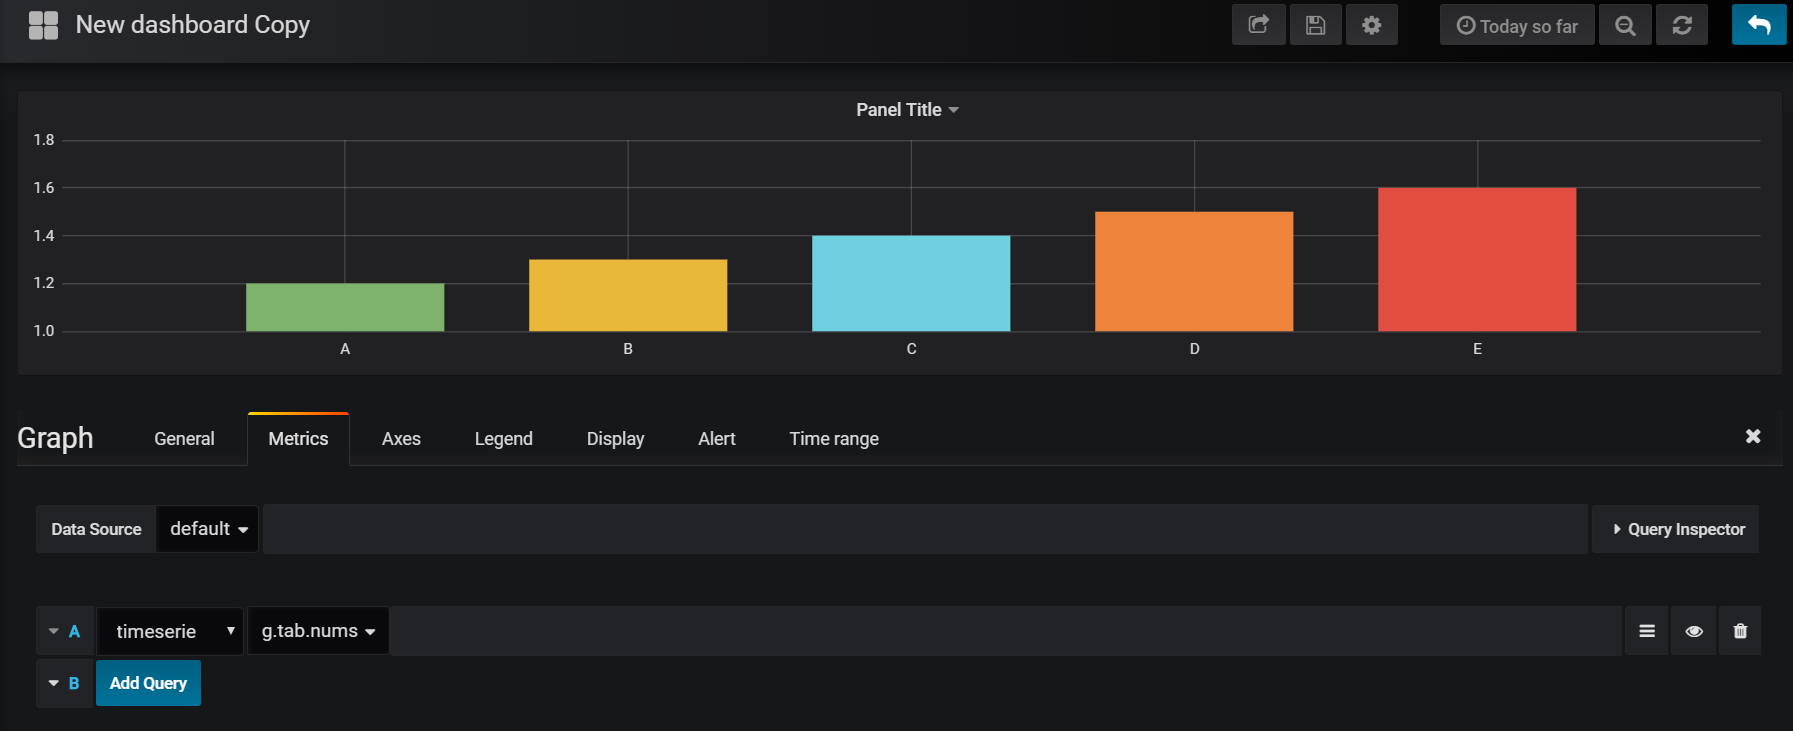 grafana graph panel showing result of displaying keyed table 'tab' arranged by 'nums' value. The data is displayed as a bar chart against a sym value.